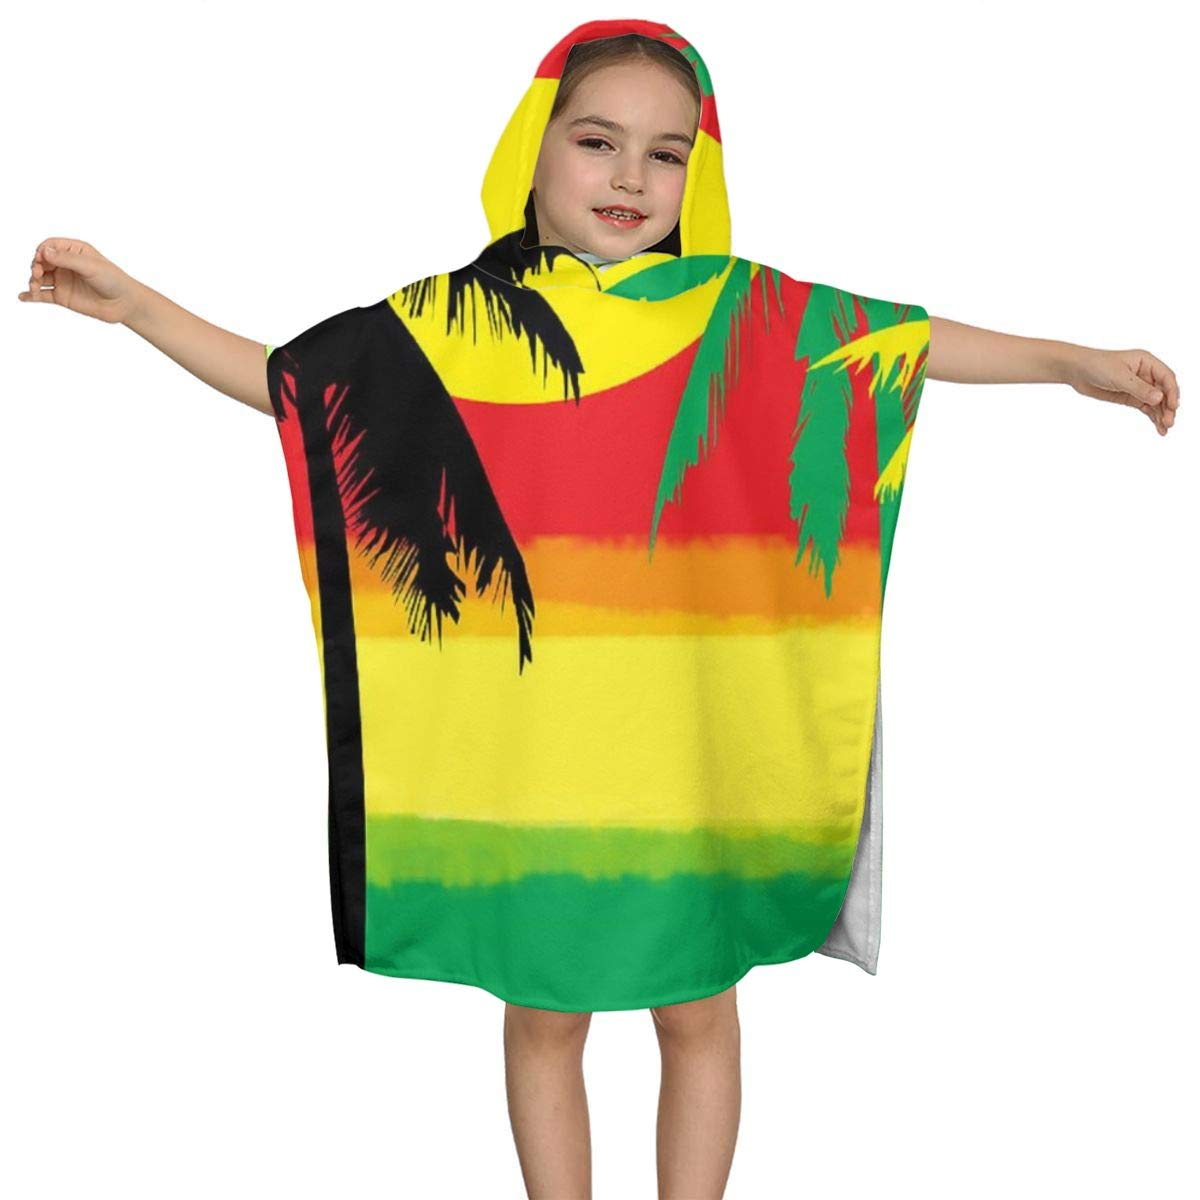 Grill Tree Island Sunset Kids Hooded Beach Bath Towel Pool Baby Toddler Bath Pool Swim Poncho Super Soft & Absorbent 23.6 X 47.2 Inches by MAYUES